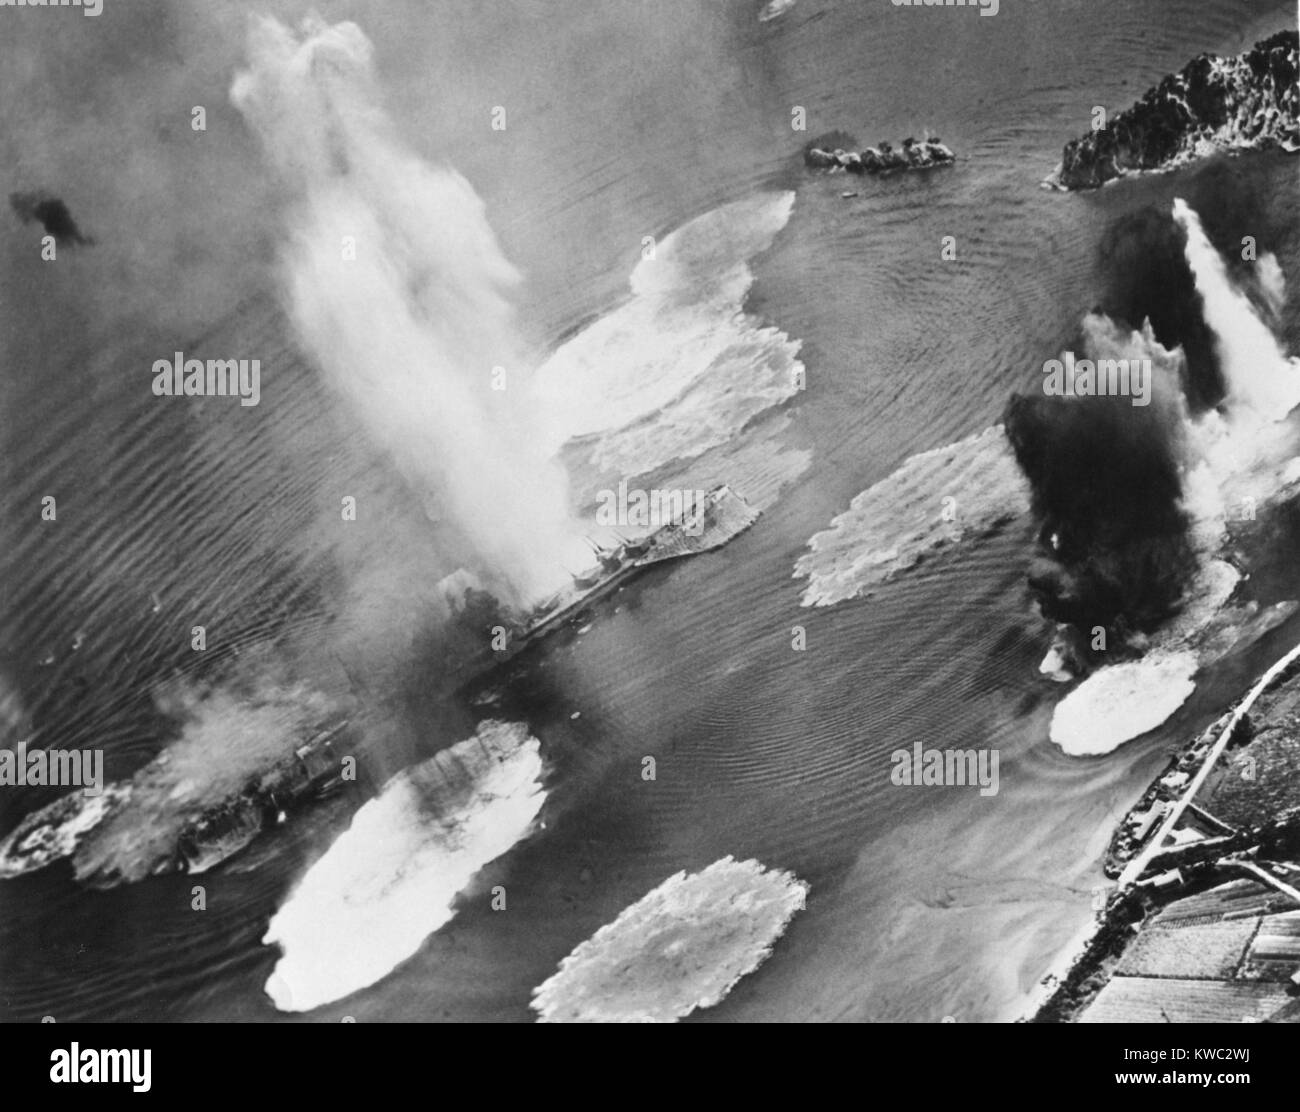 U.S. carrier planes bomb Japanese cruisers anchored in the Kure Harbor Naval Base at Honshu. The warship under attack - Stock Image